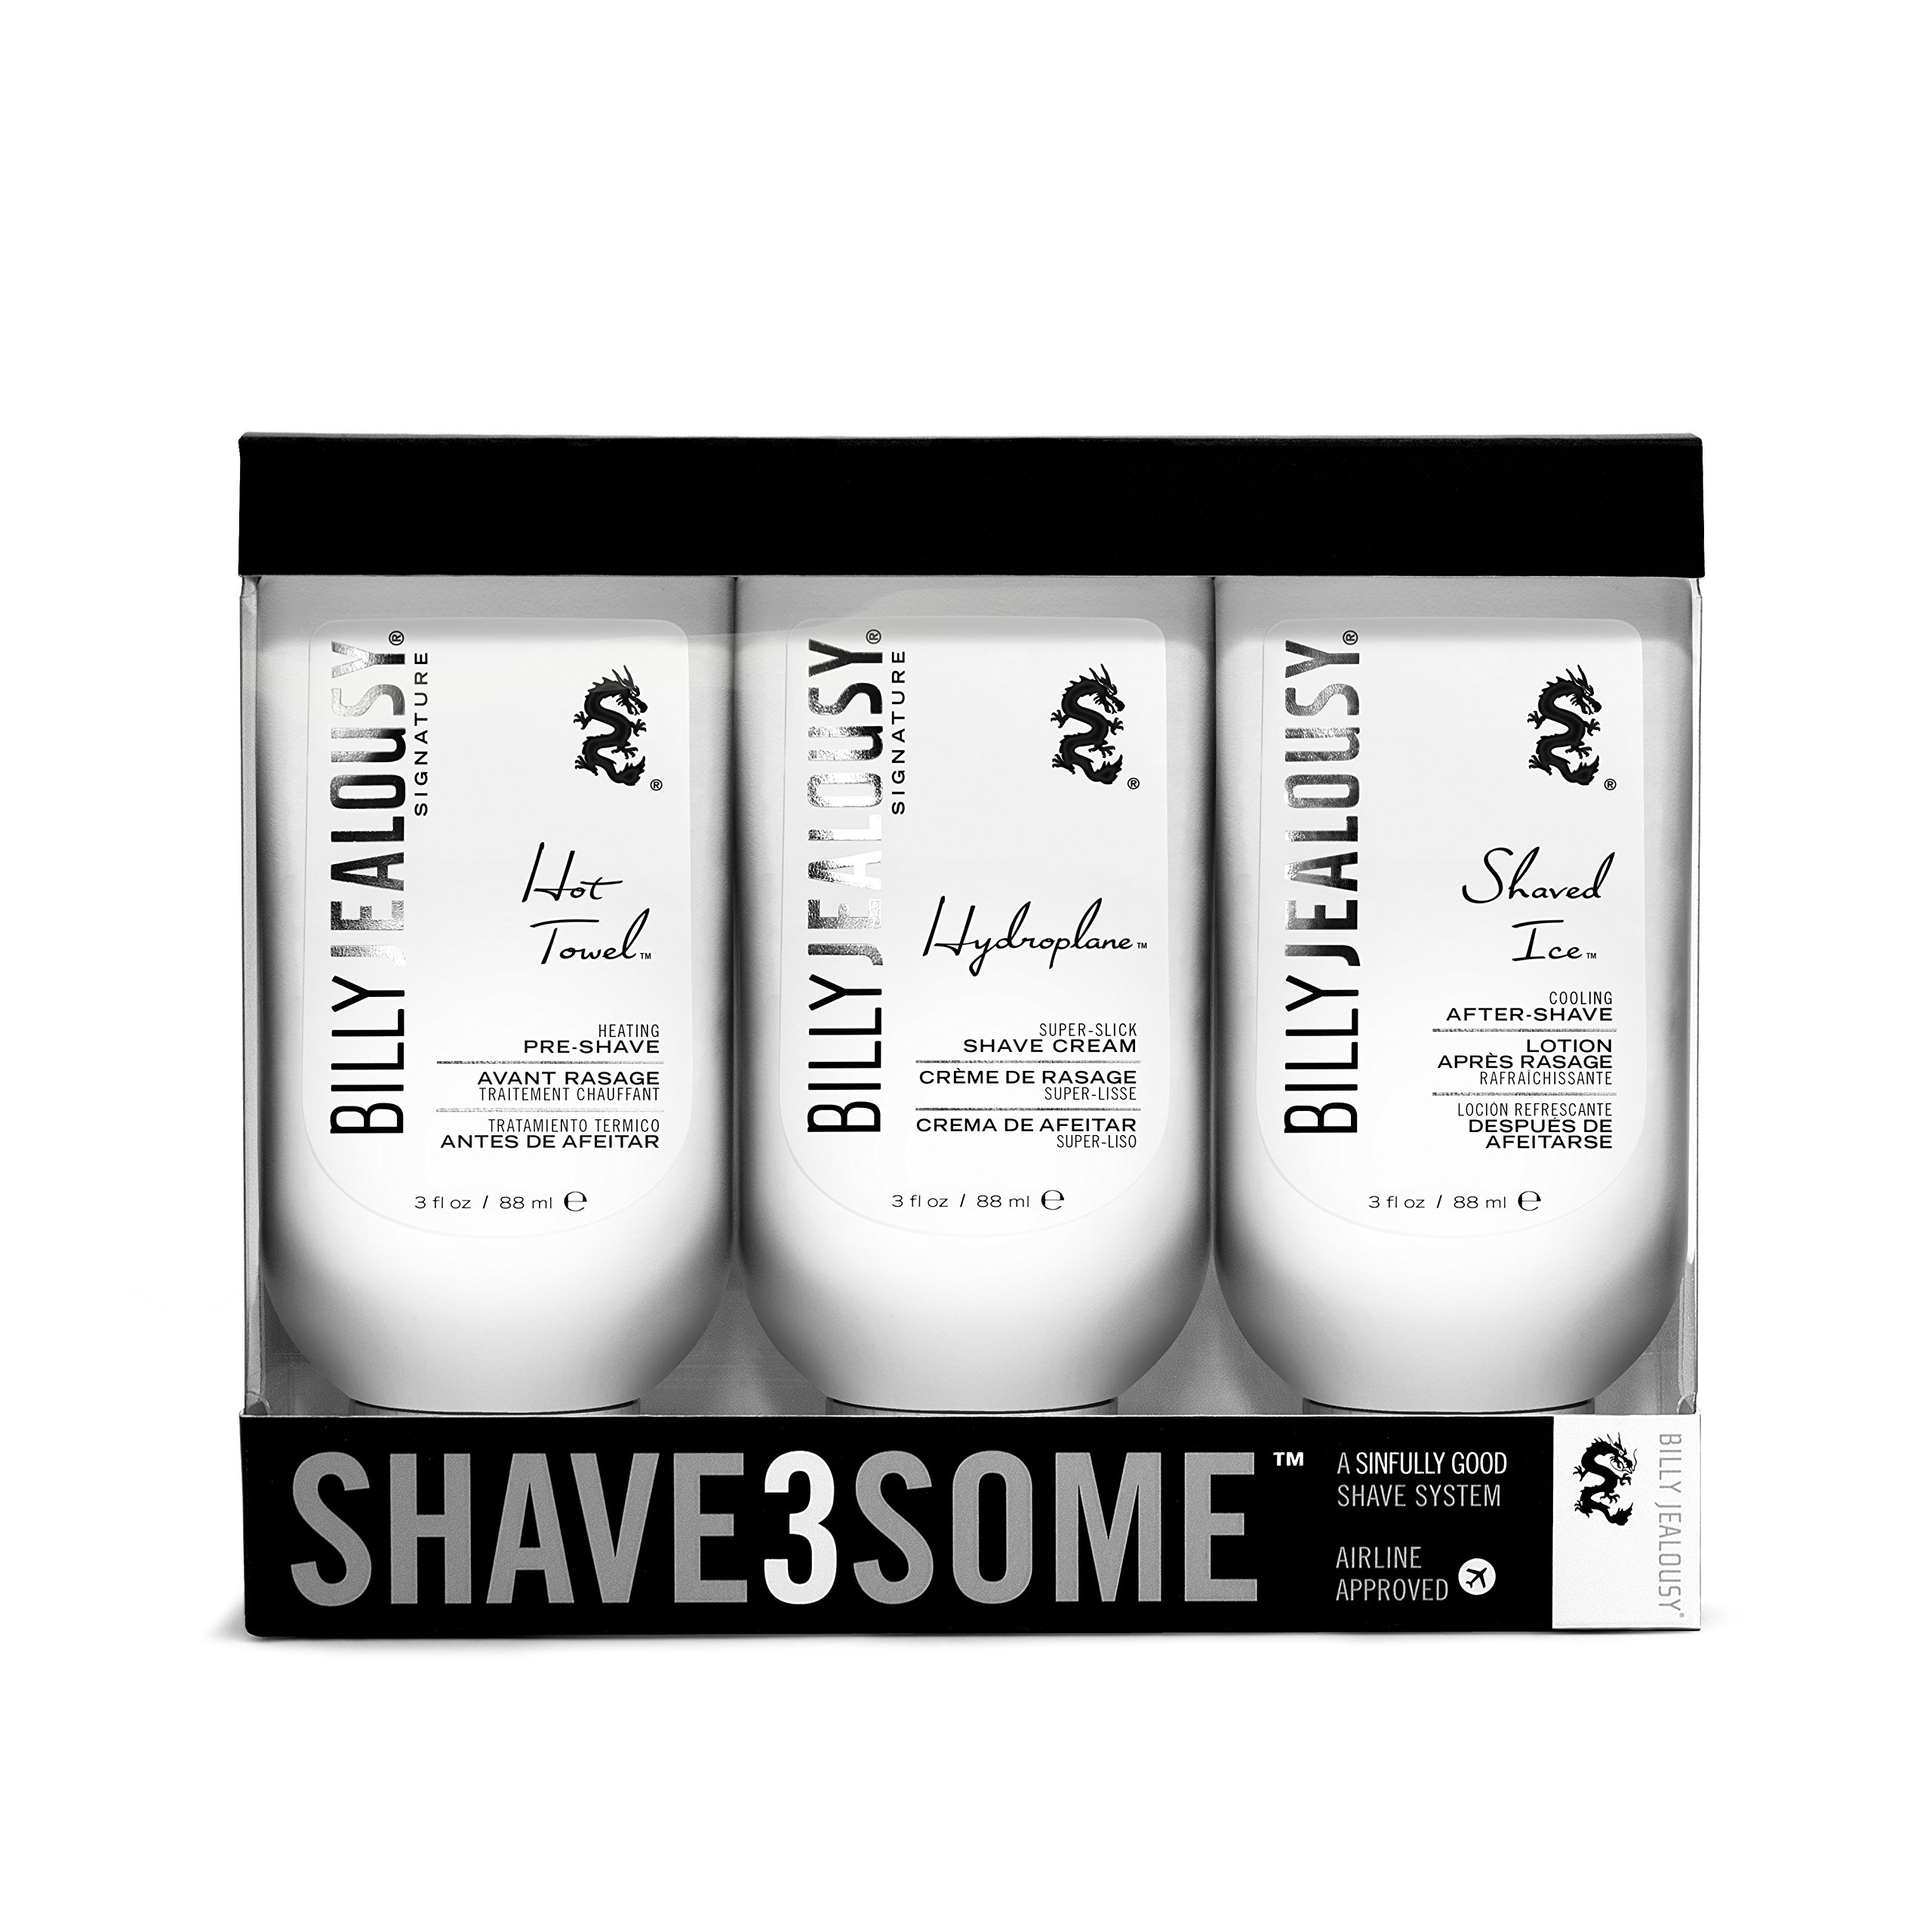 Billy Jealous Shave3some Travel-Size Men's Pre-Shave, Shaving Cream & After Shave Trio by Billy Jealousy